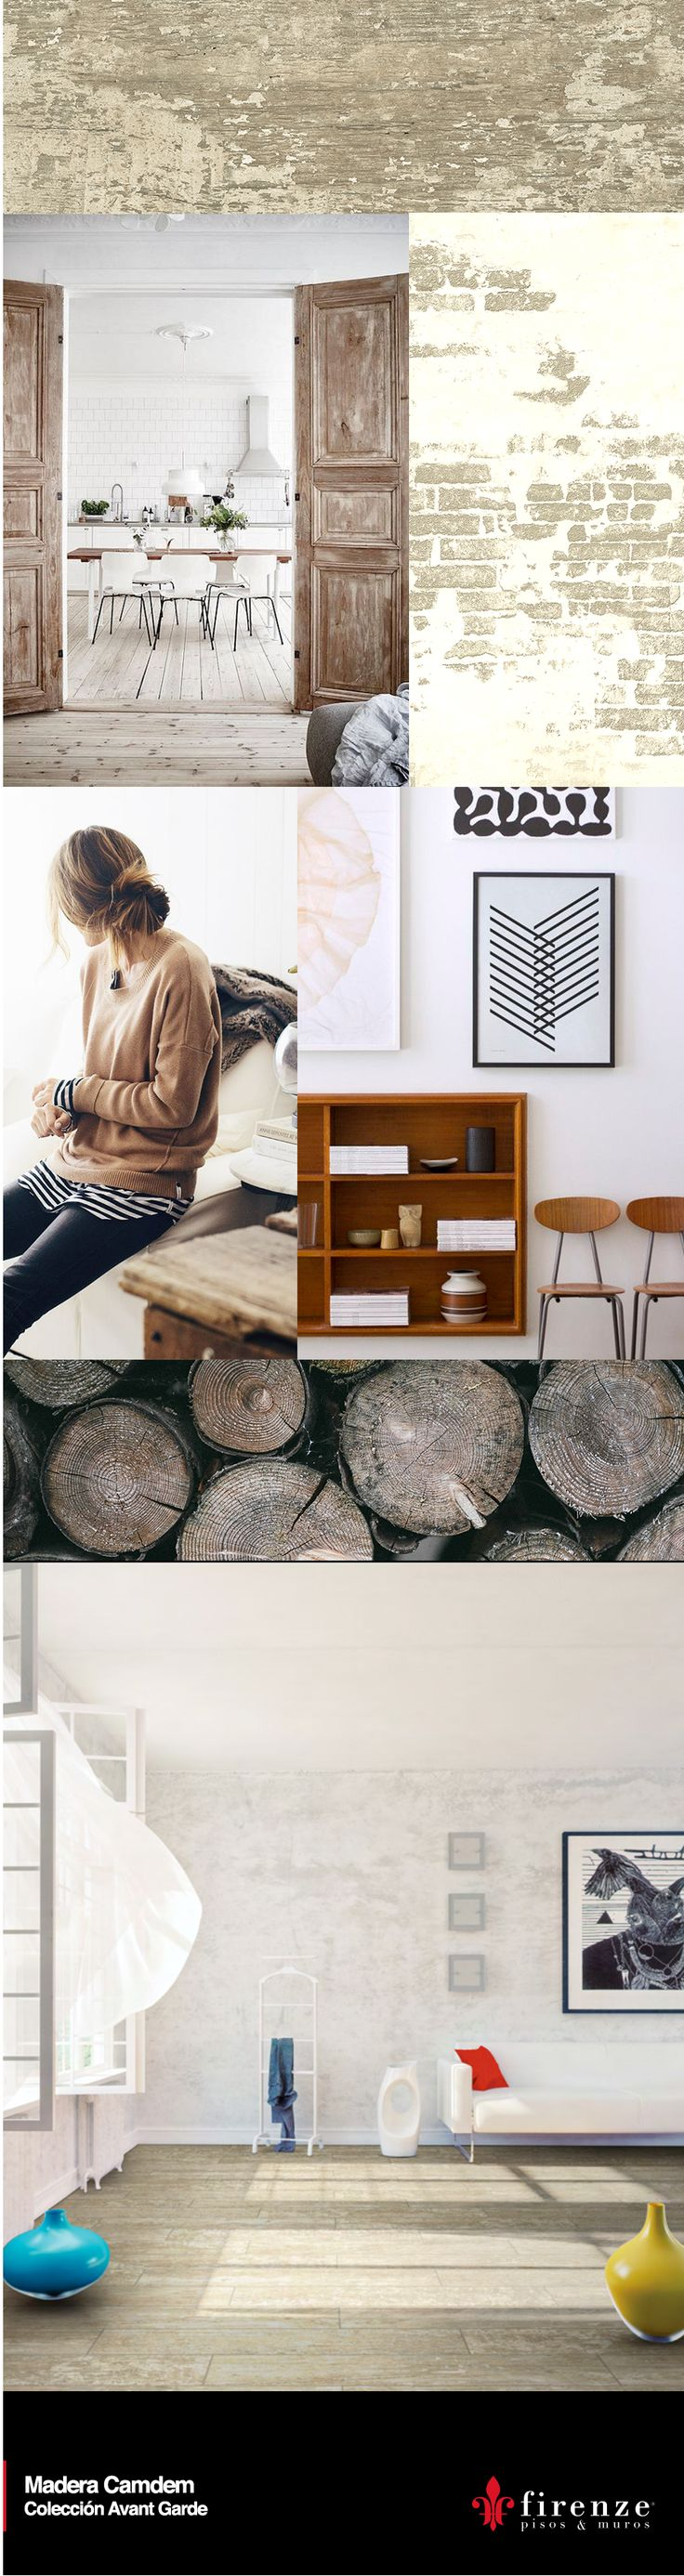 39 best decoration images on pinterest trends spaces and